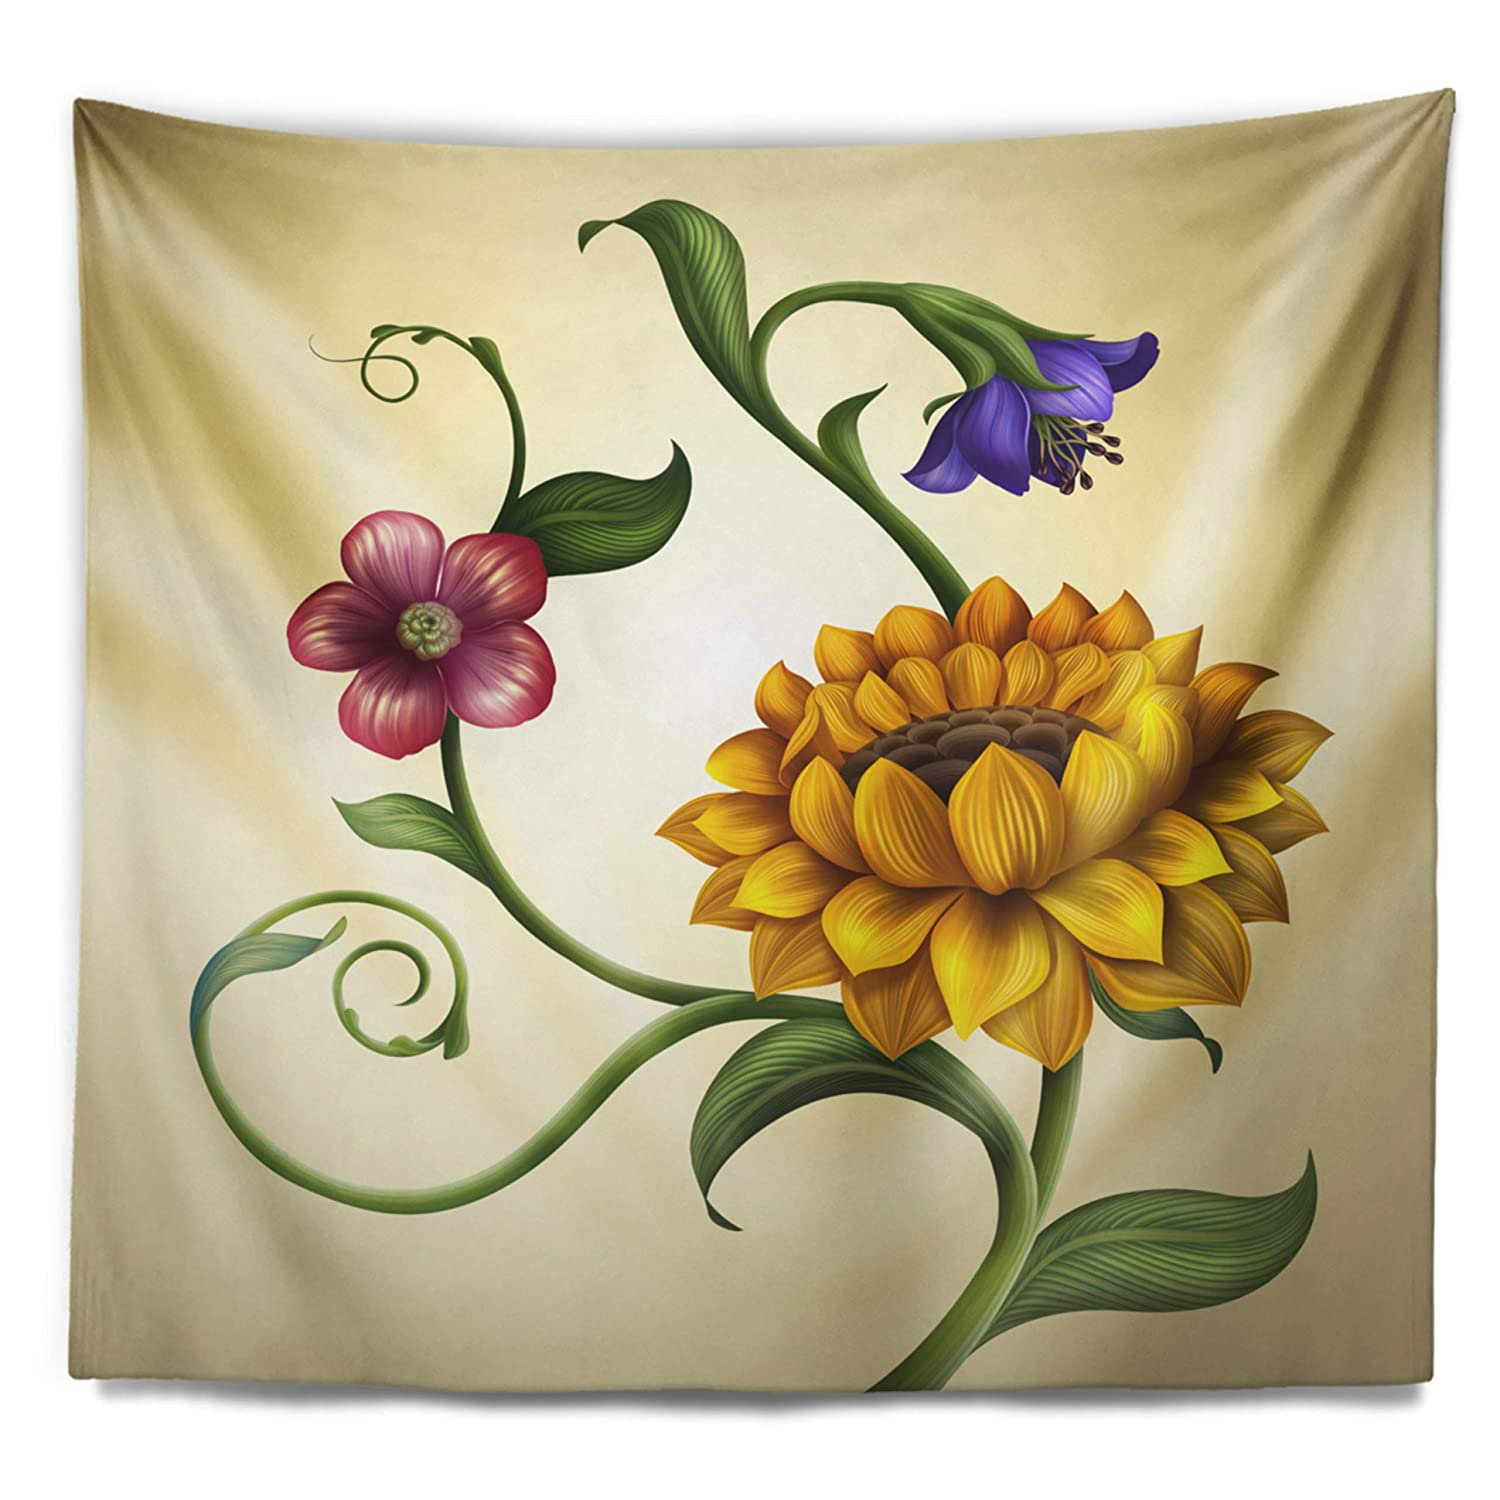 Designart TAP15475-39-32 Flowers and Leaves Illustration Floral Blanket D/écor Art for Home and Office Wall Tapestry 39 x 32 Medium